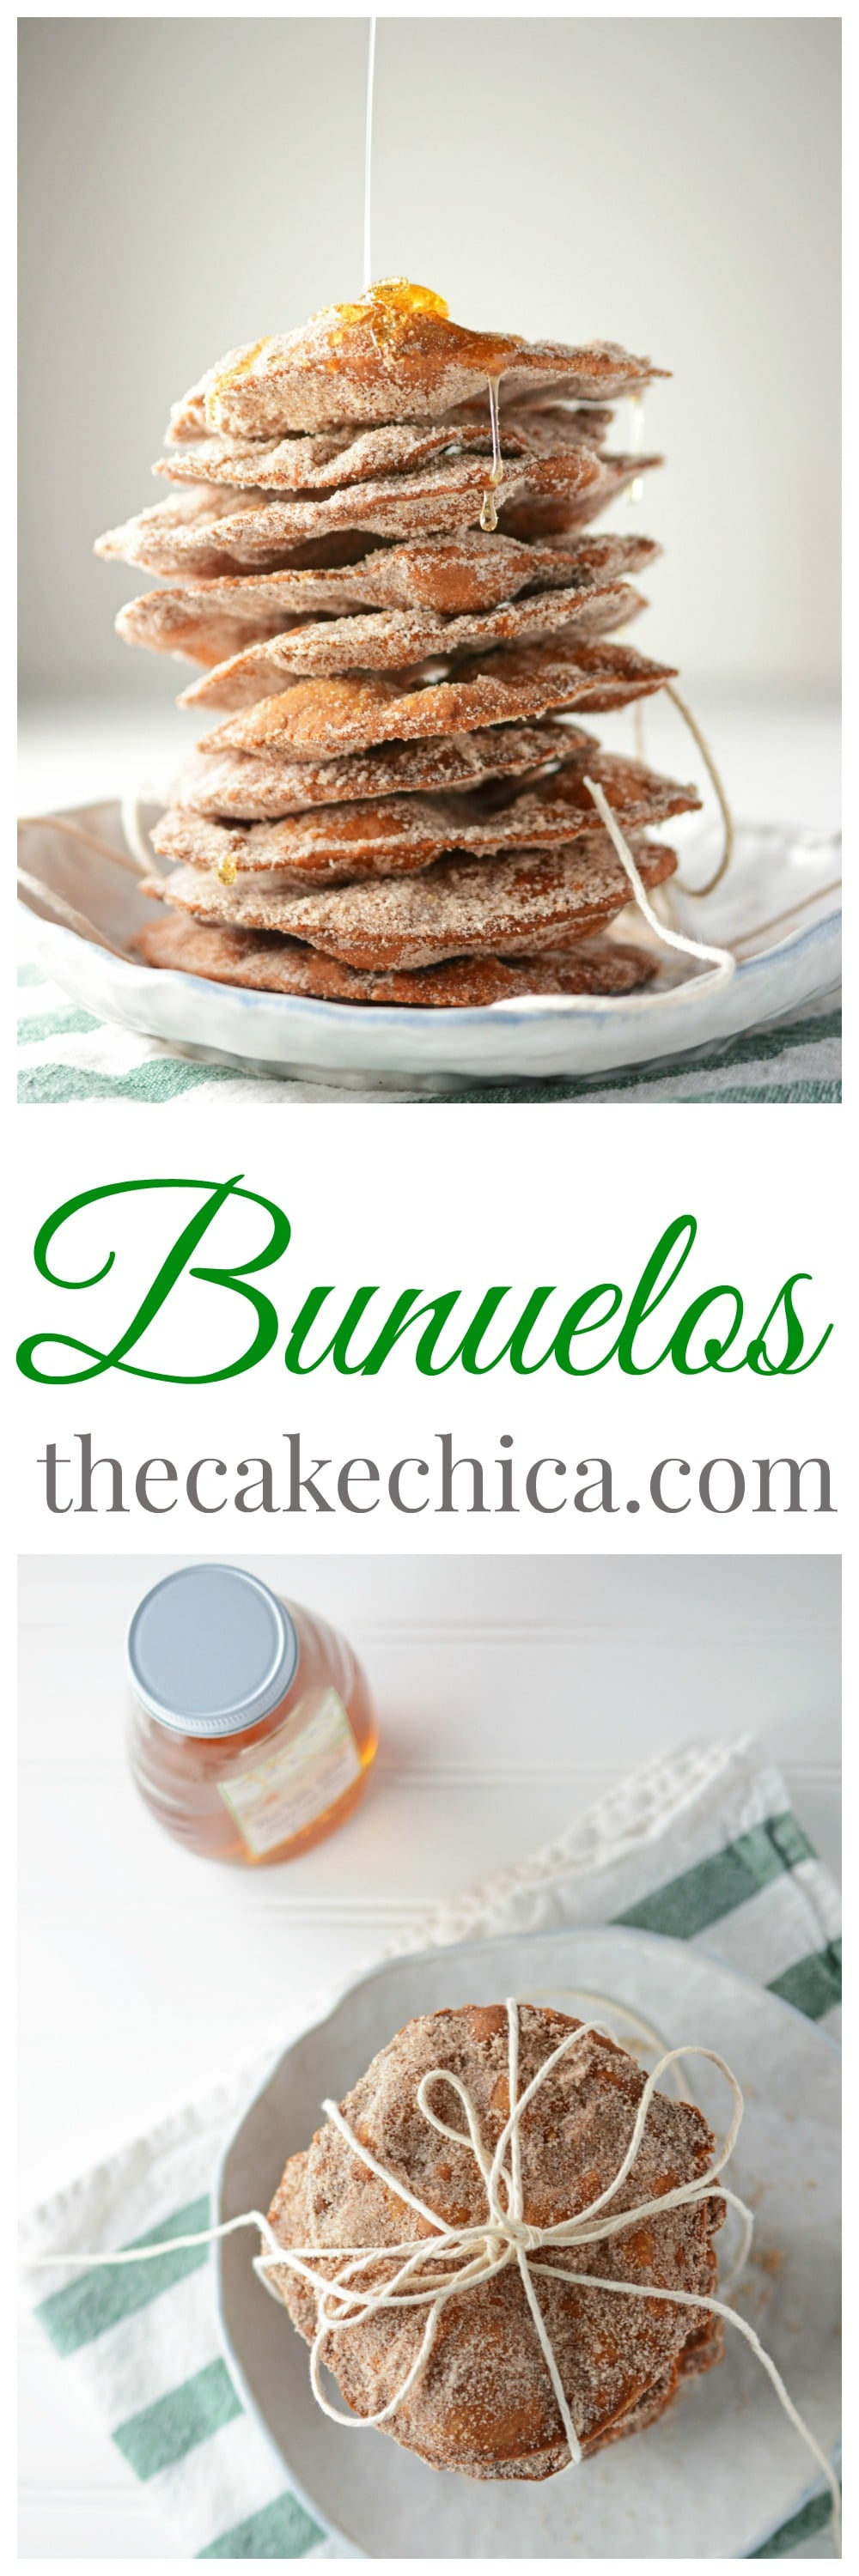 bunuelos-for-pinterest